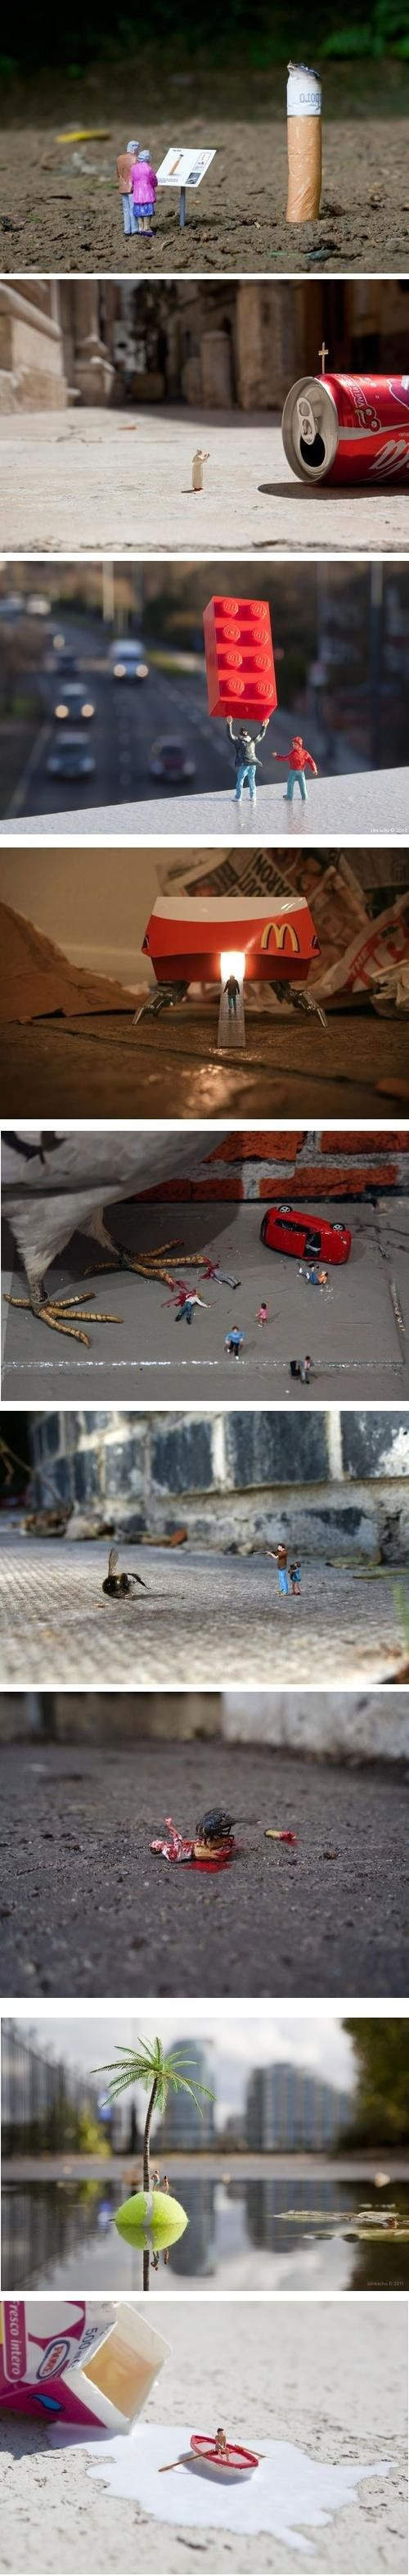 Artist Slinkachu...The miniature world